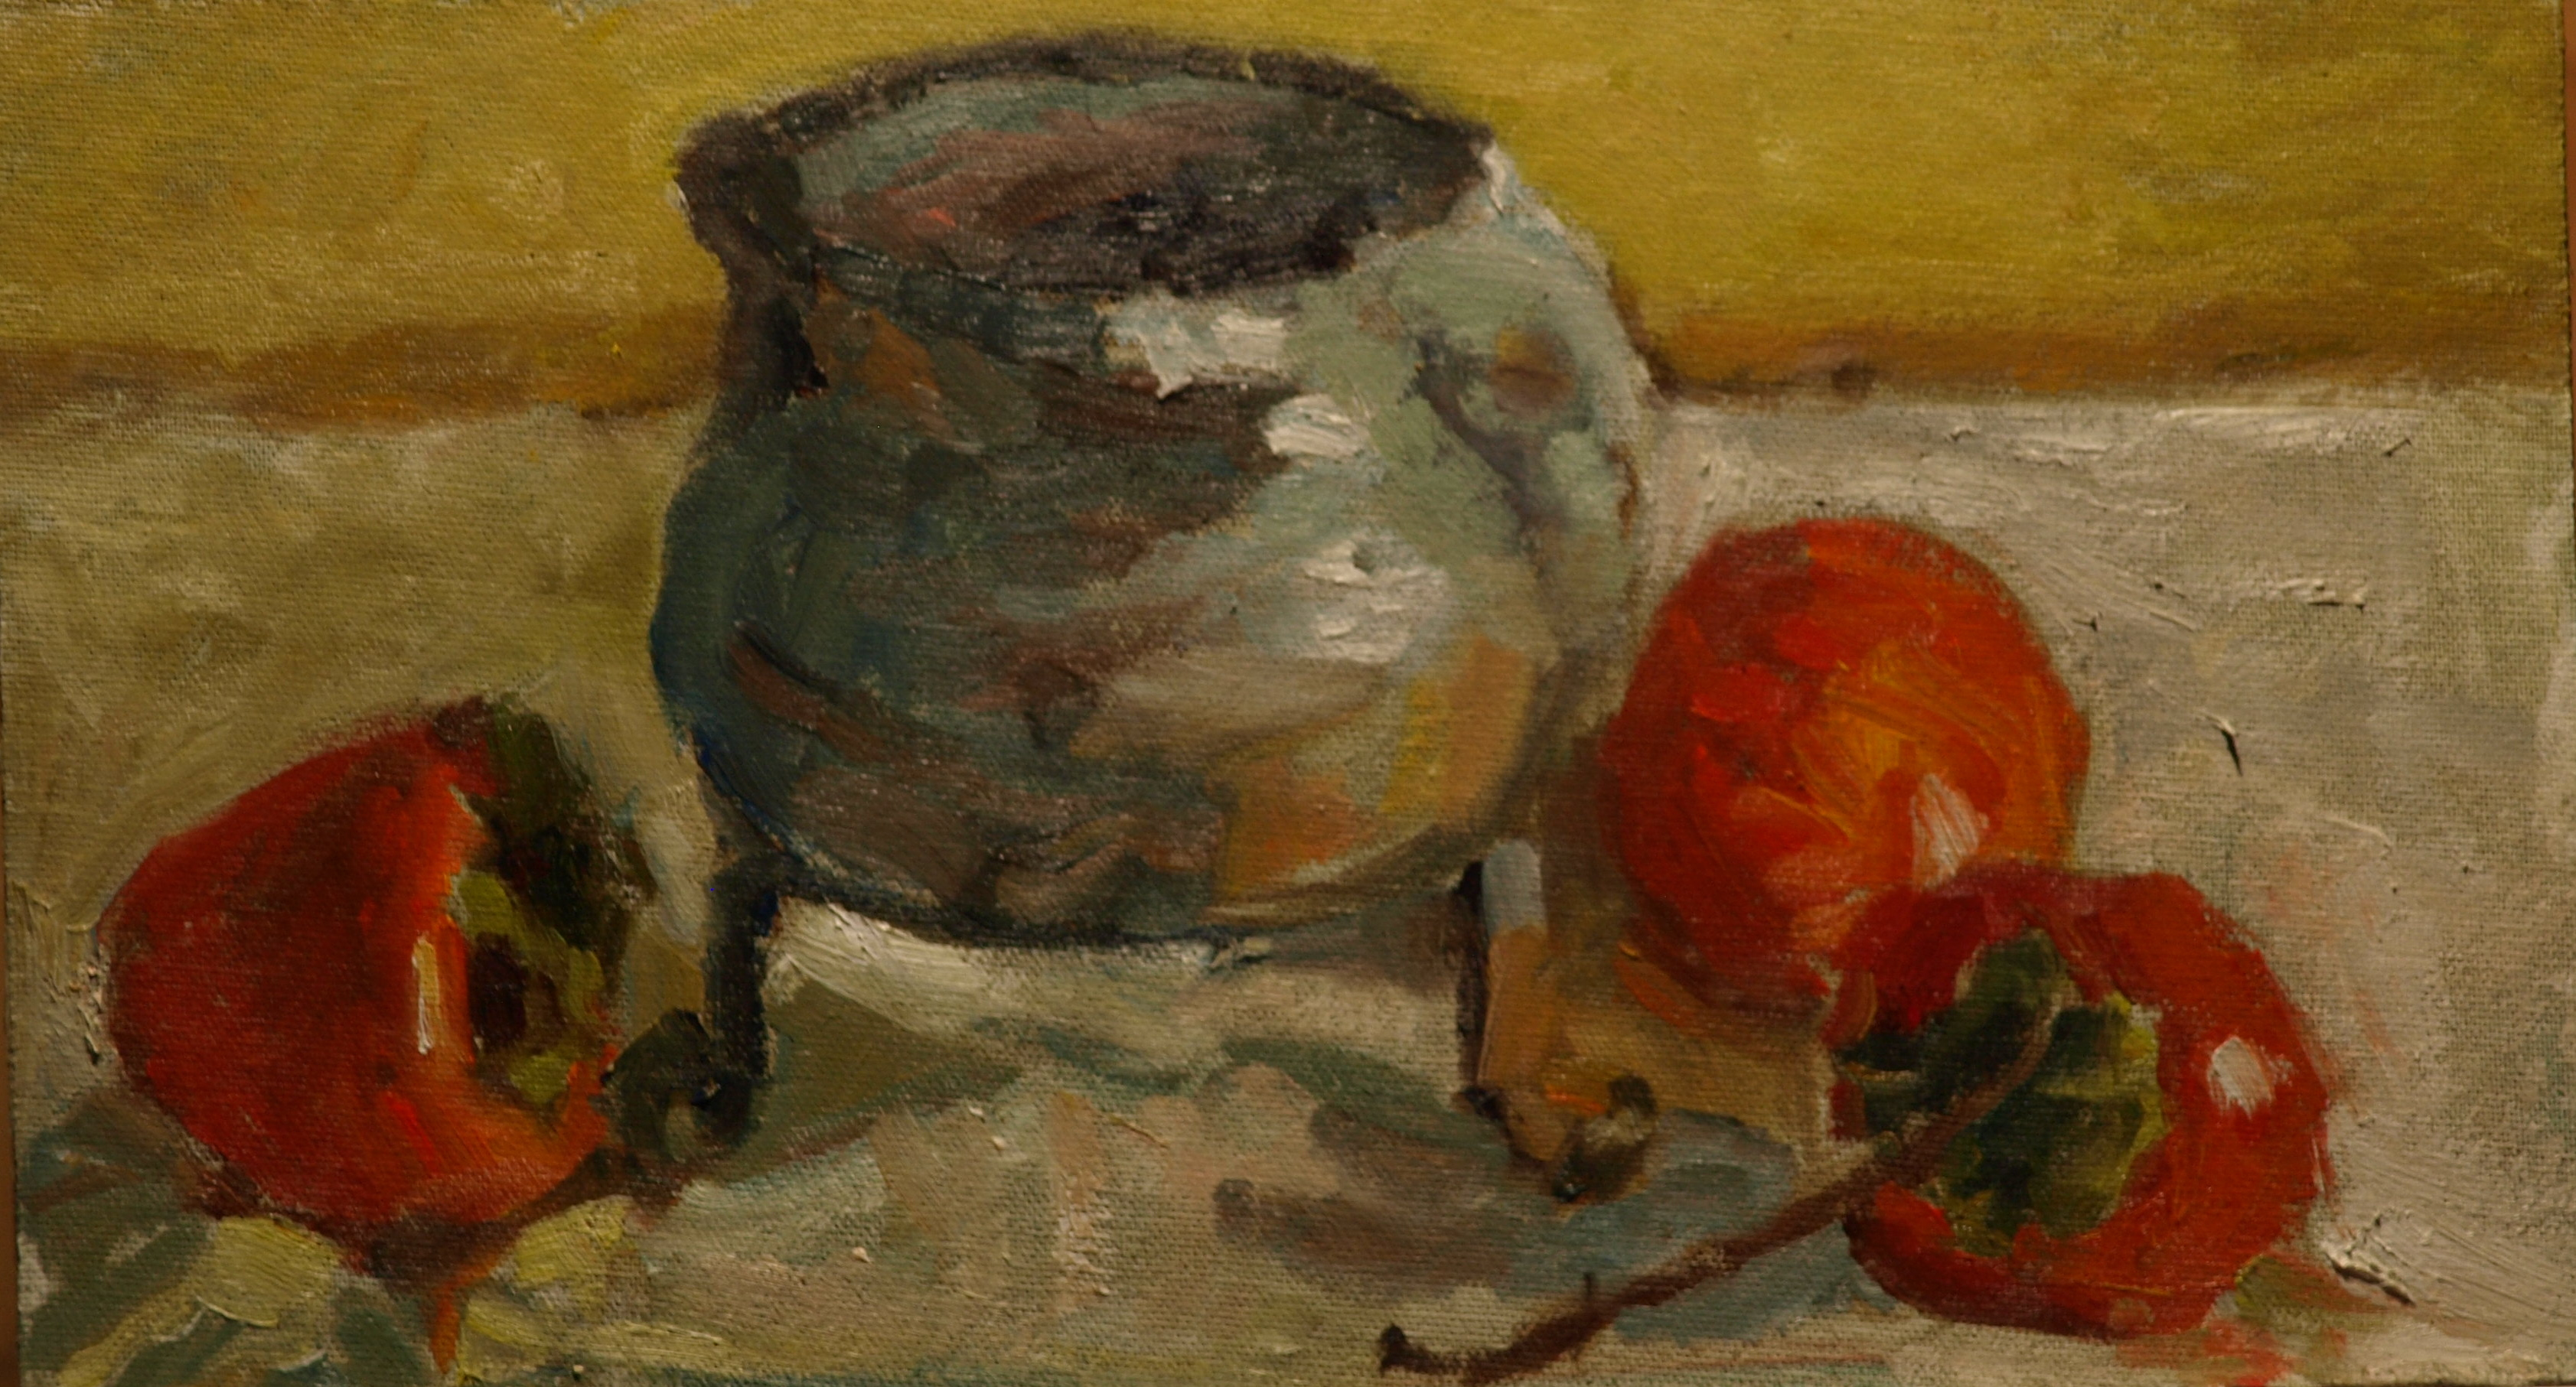 Chinese Pot, Oil on Canvas on Panel, 8 x 14 Inches, by Richard Stalter, $225